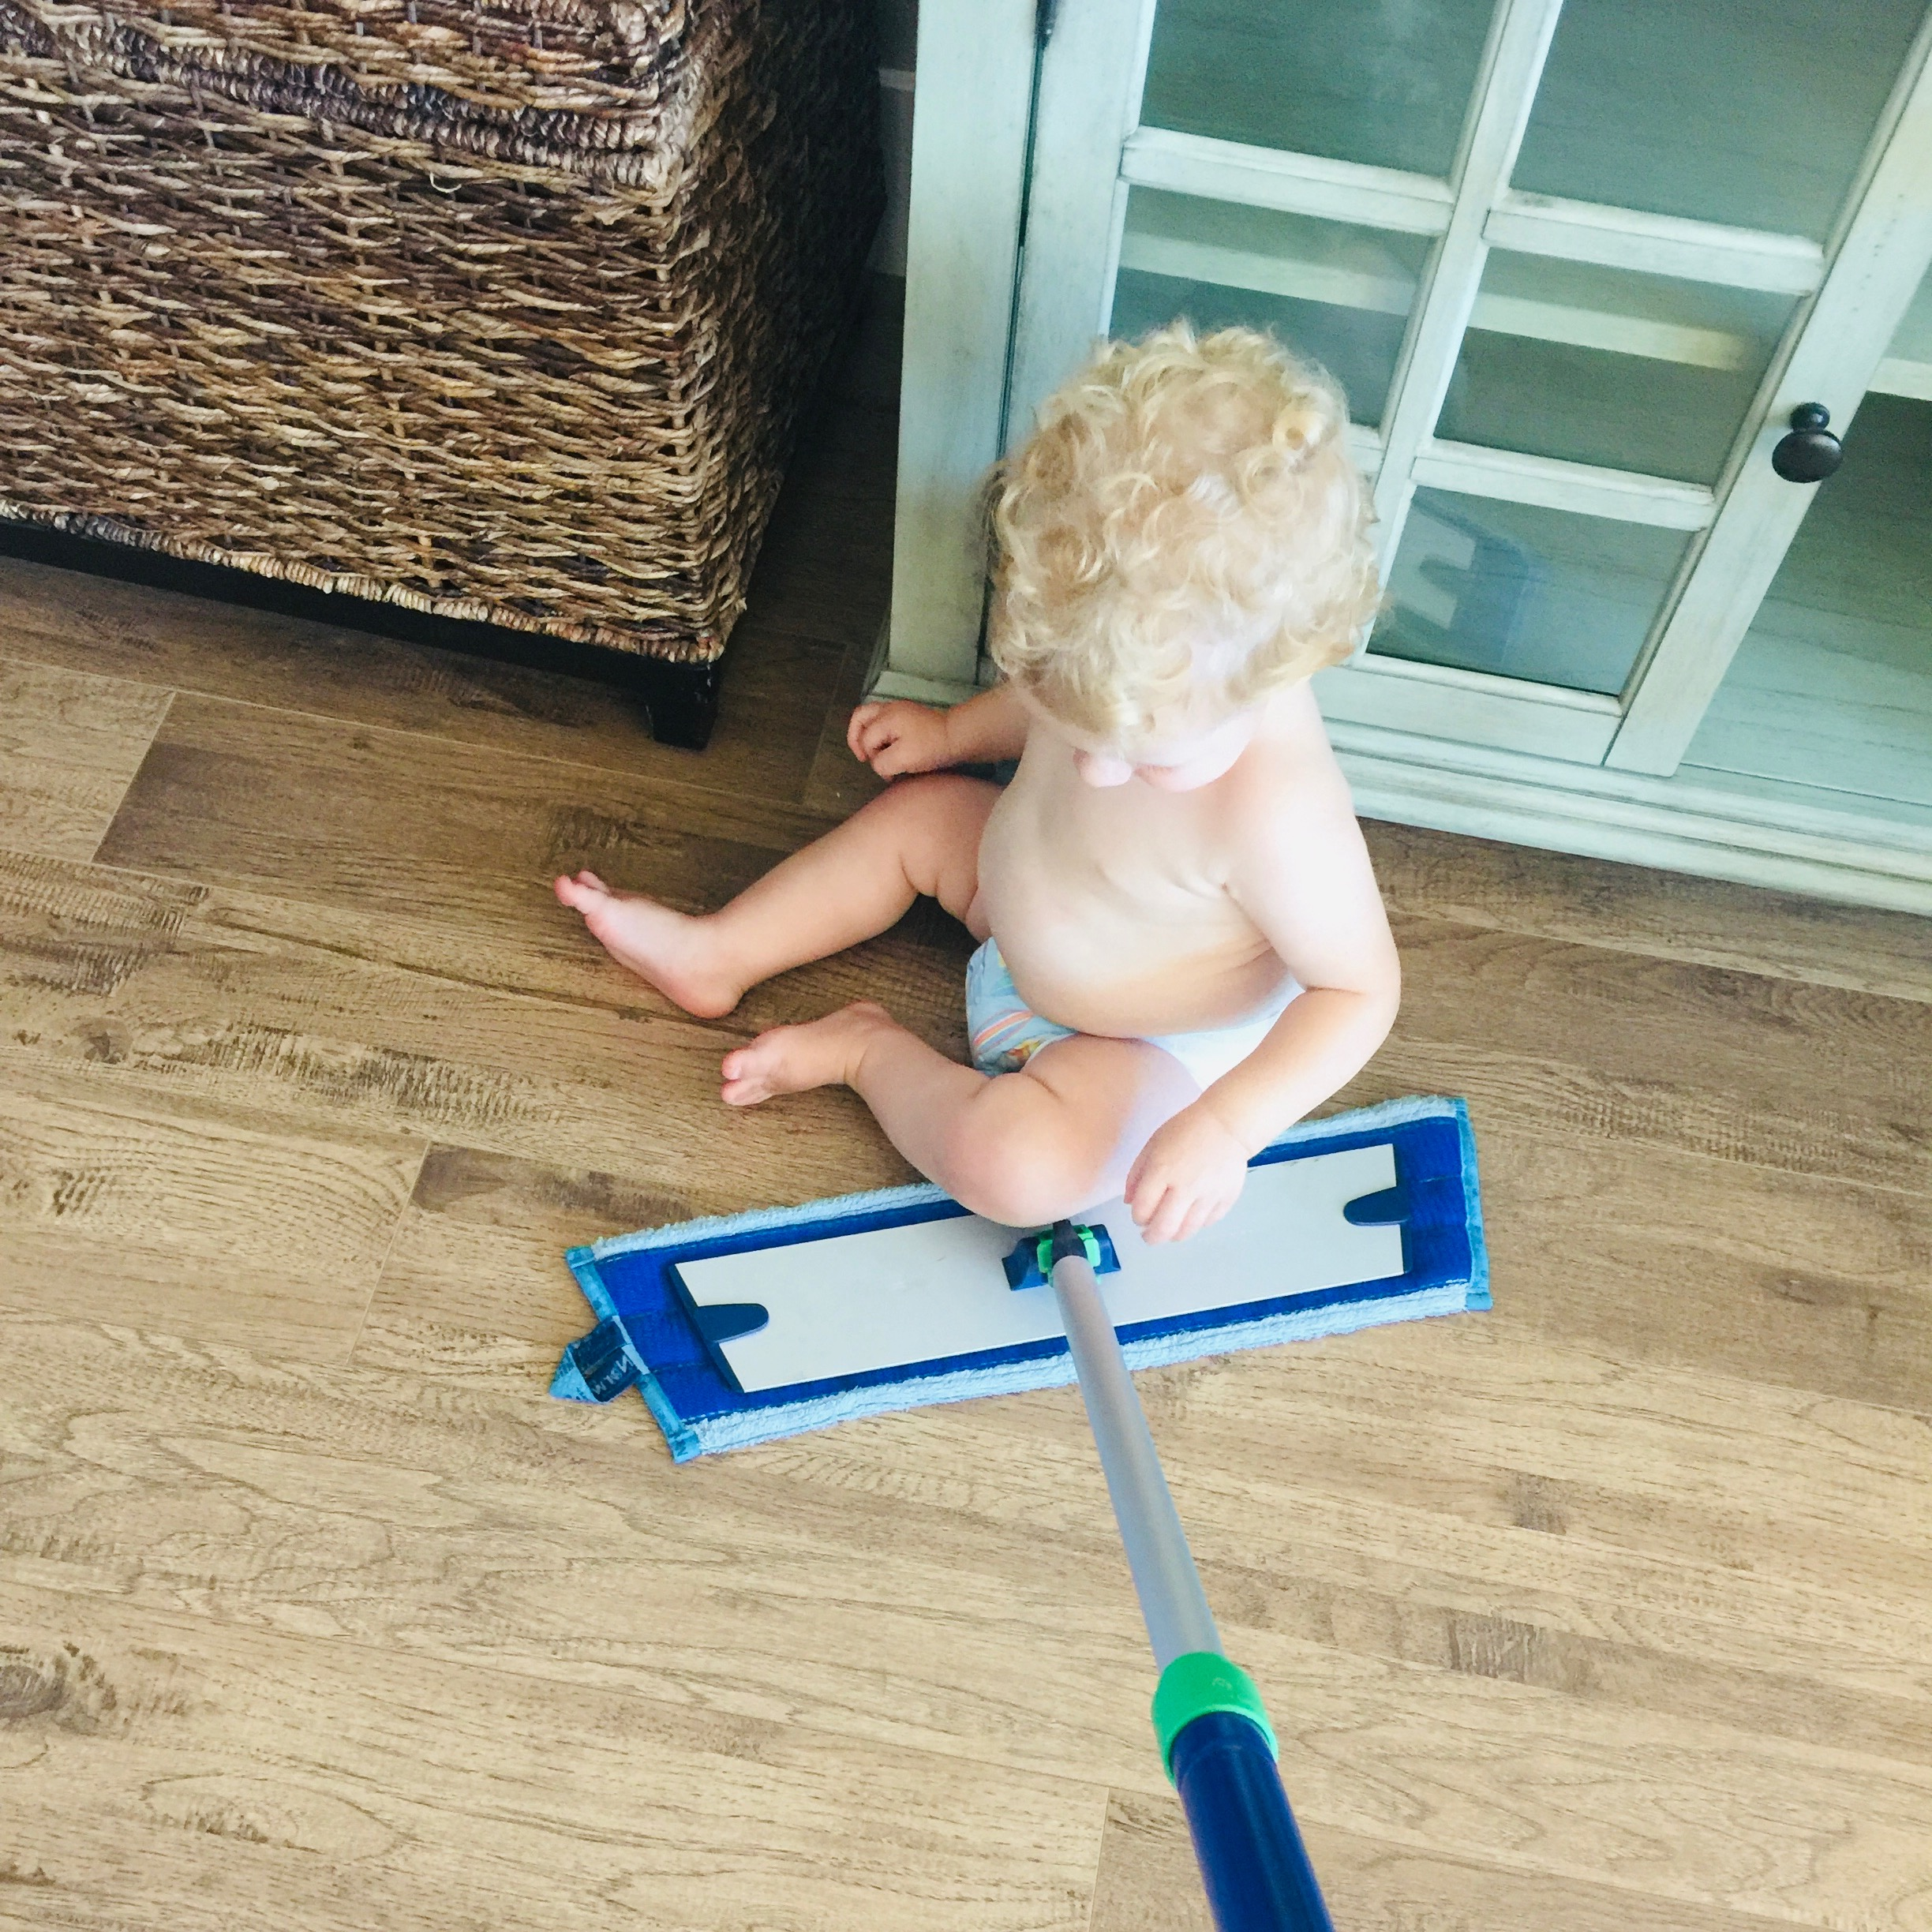 That MOP though!